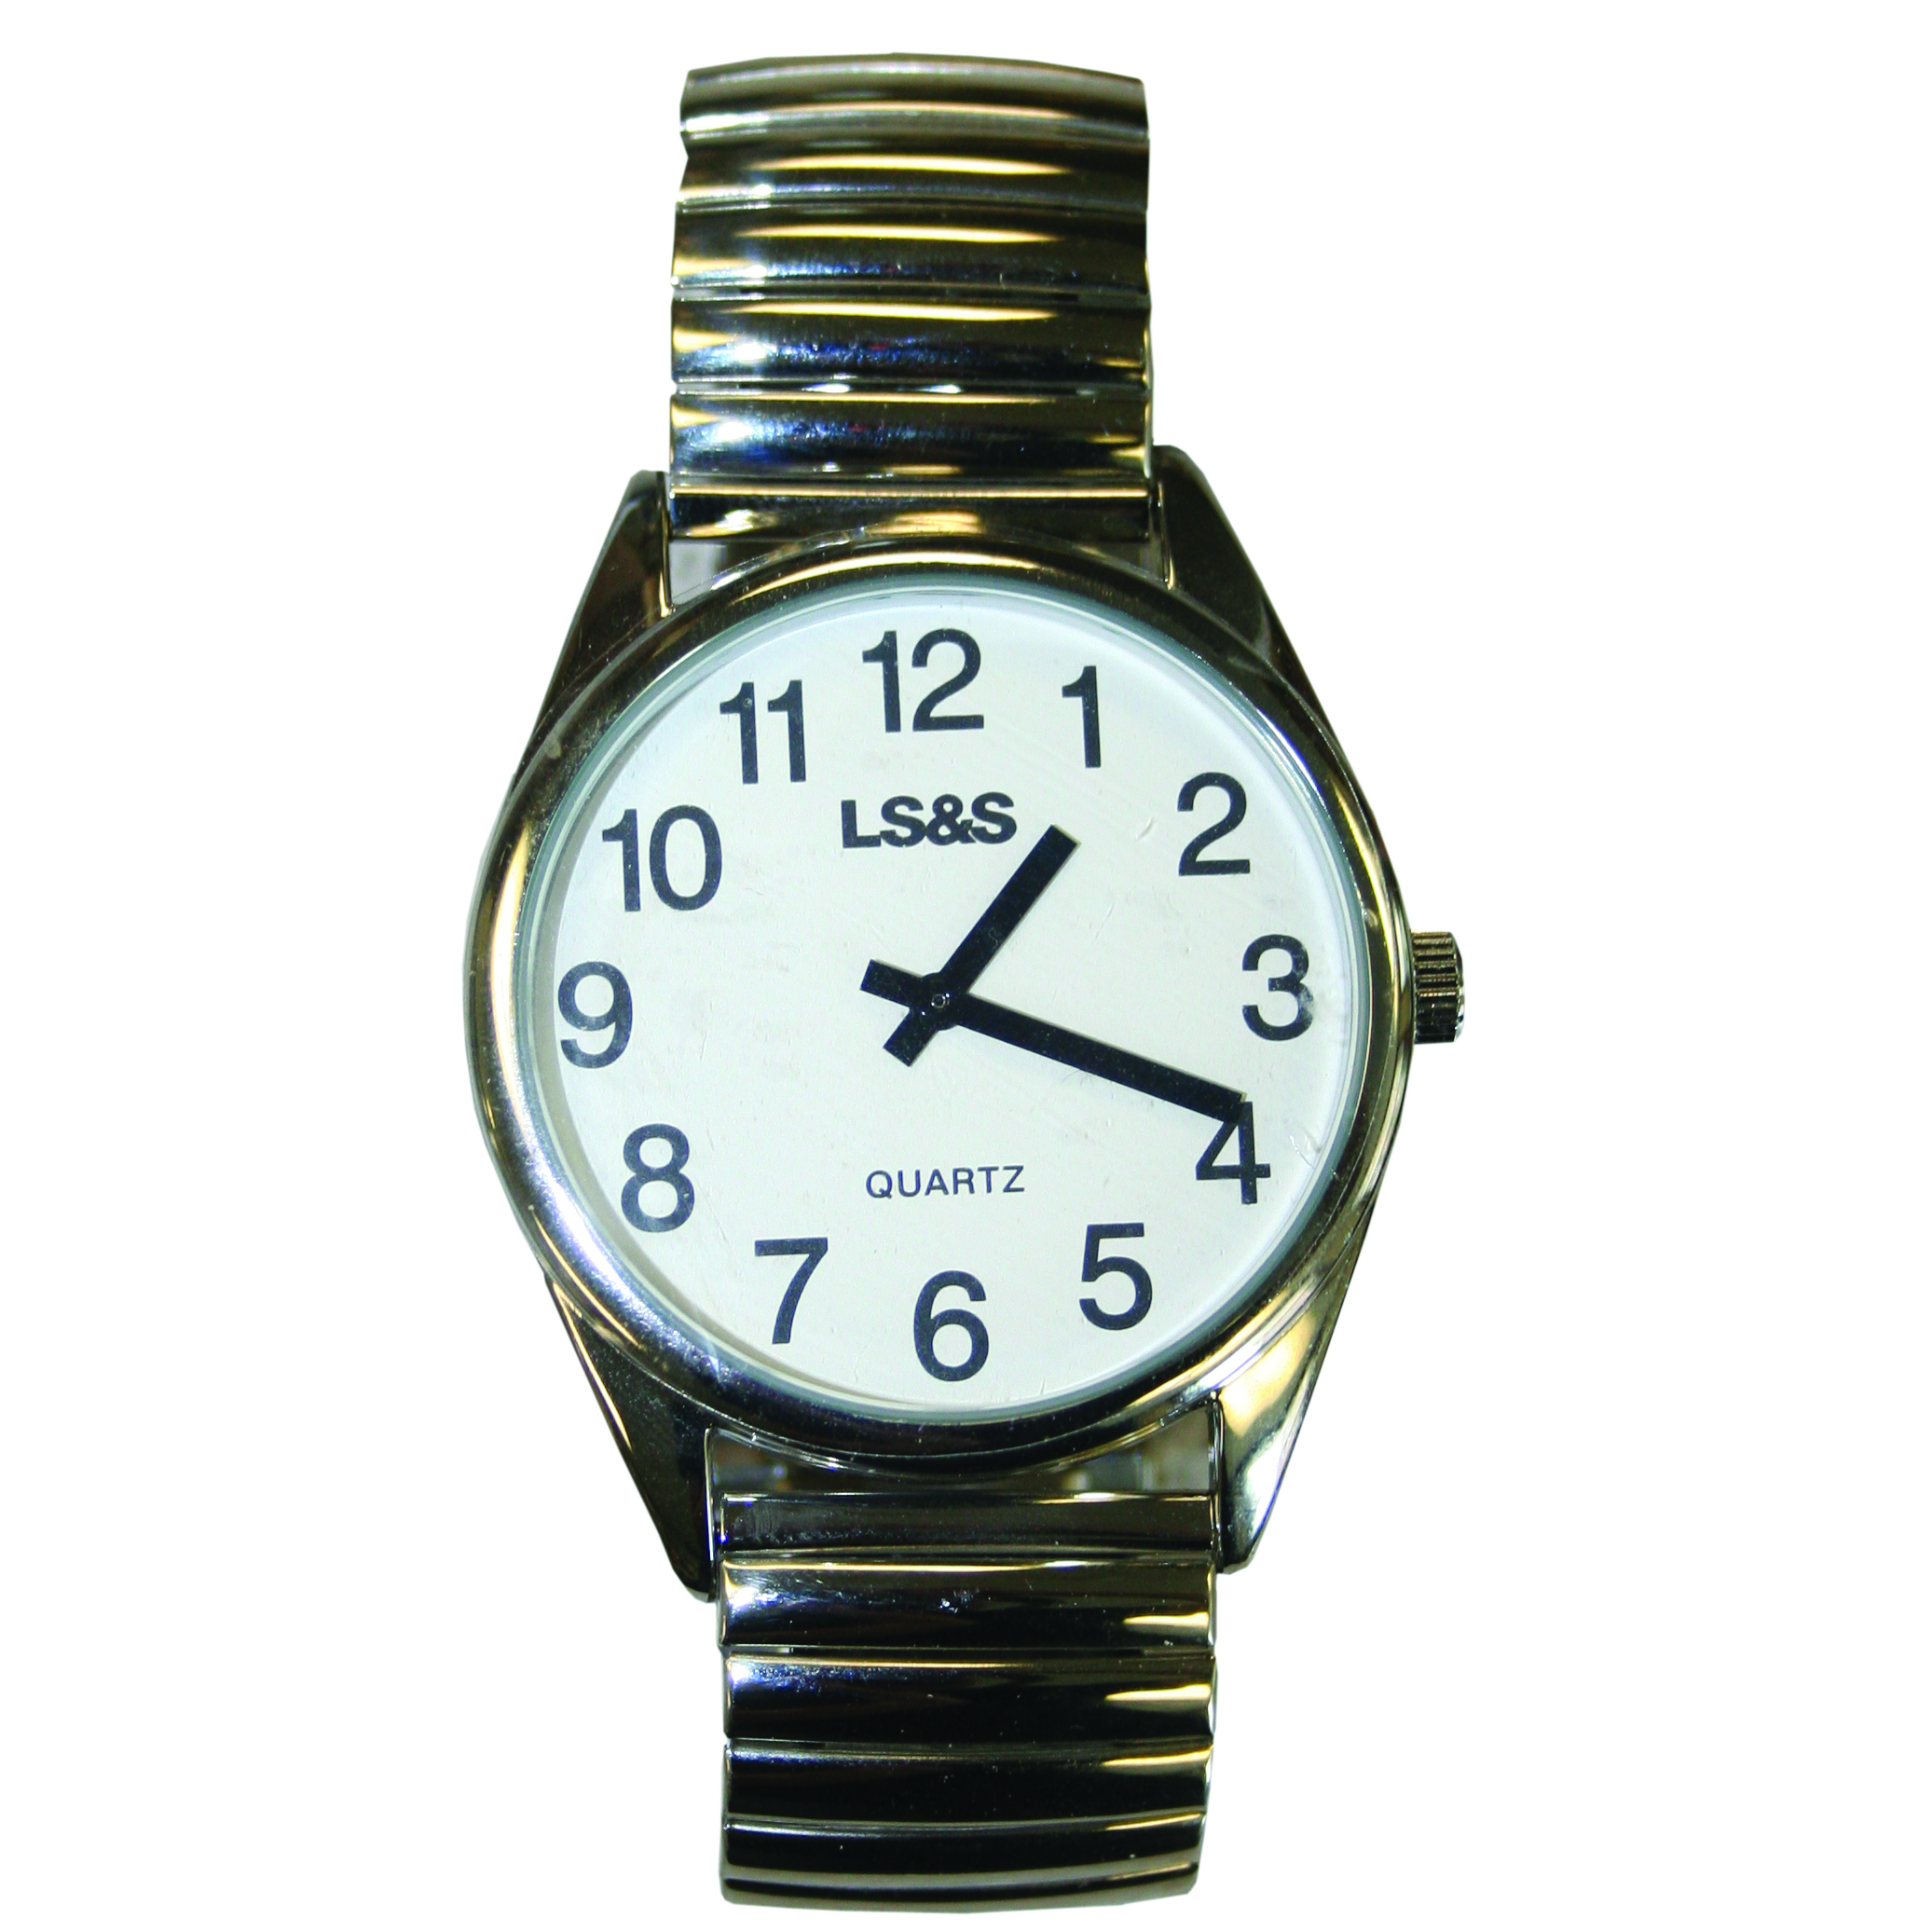 verbalise watches case product in talking gold angle shop watch ladies